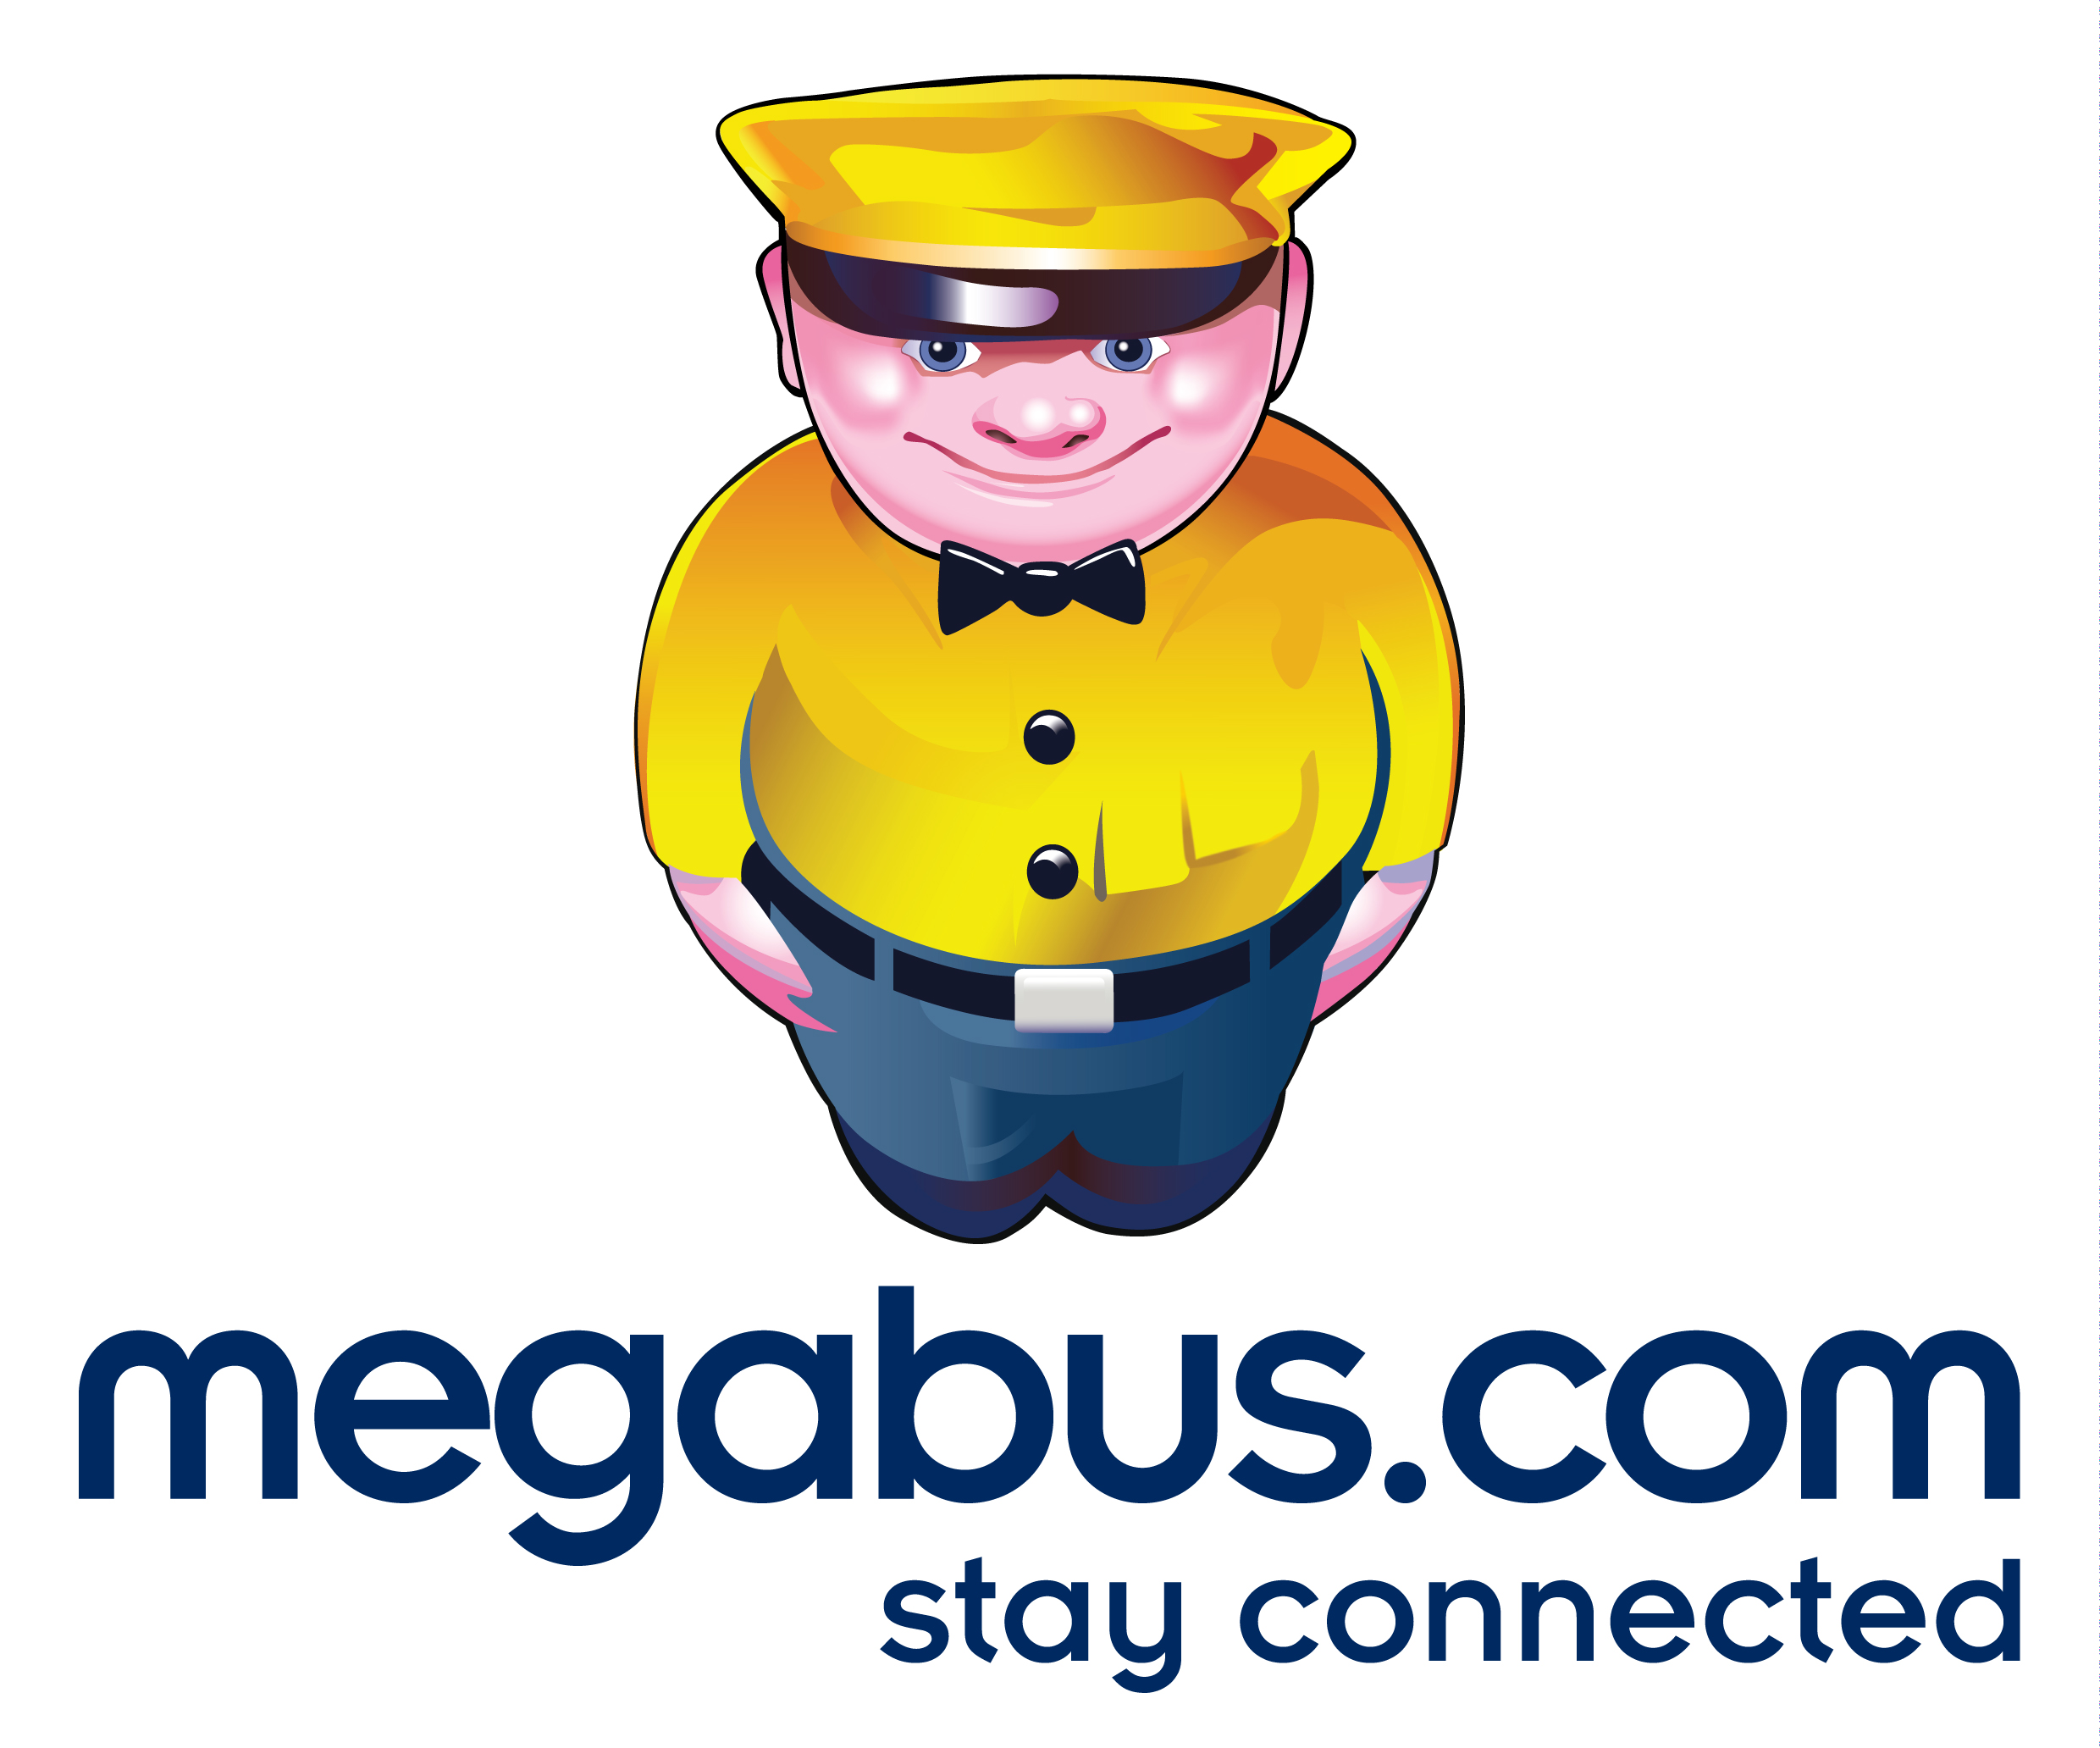 megabus-text-blue-copy.jpg